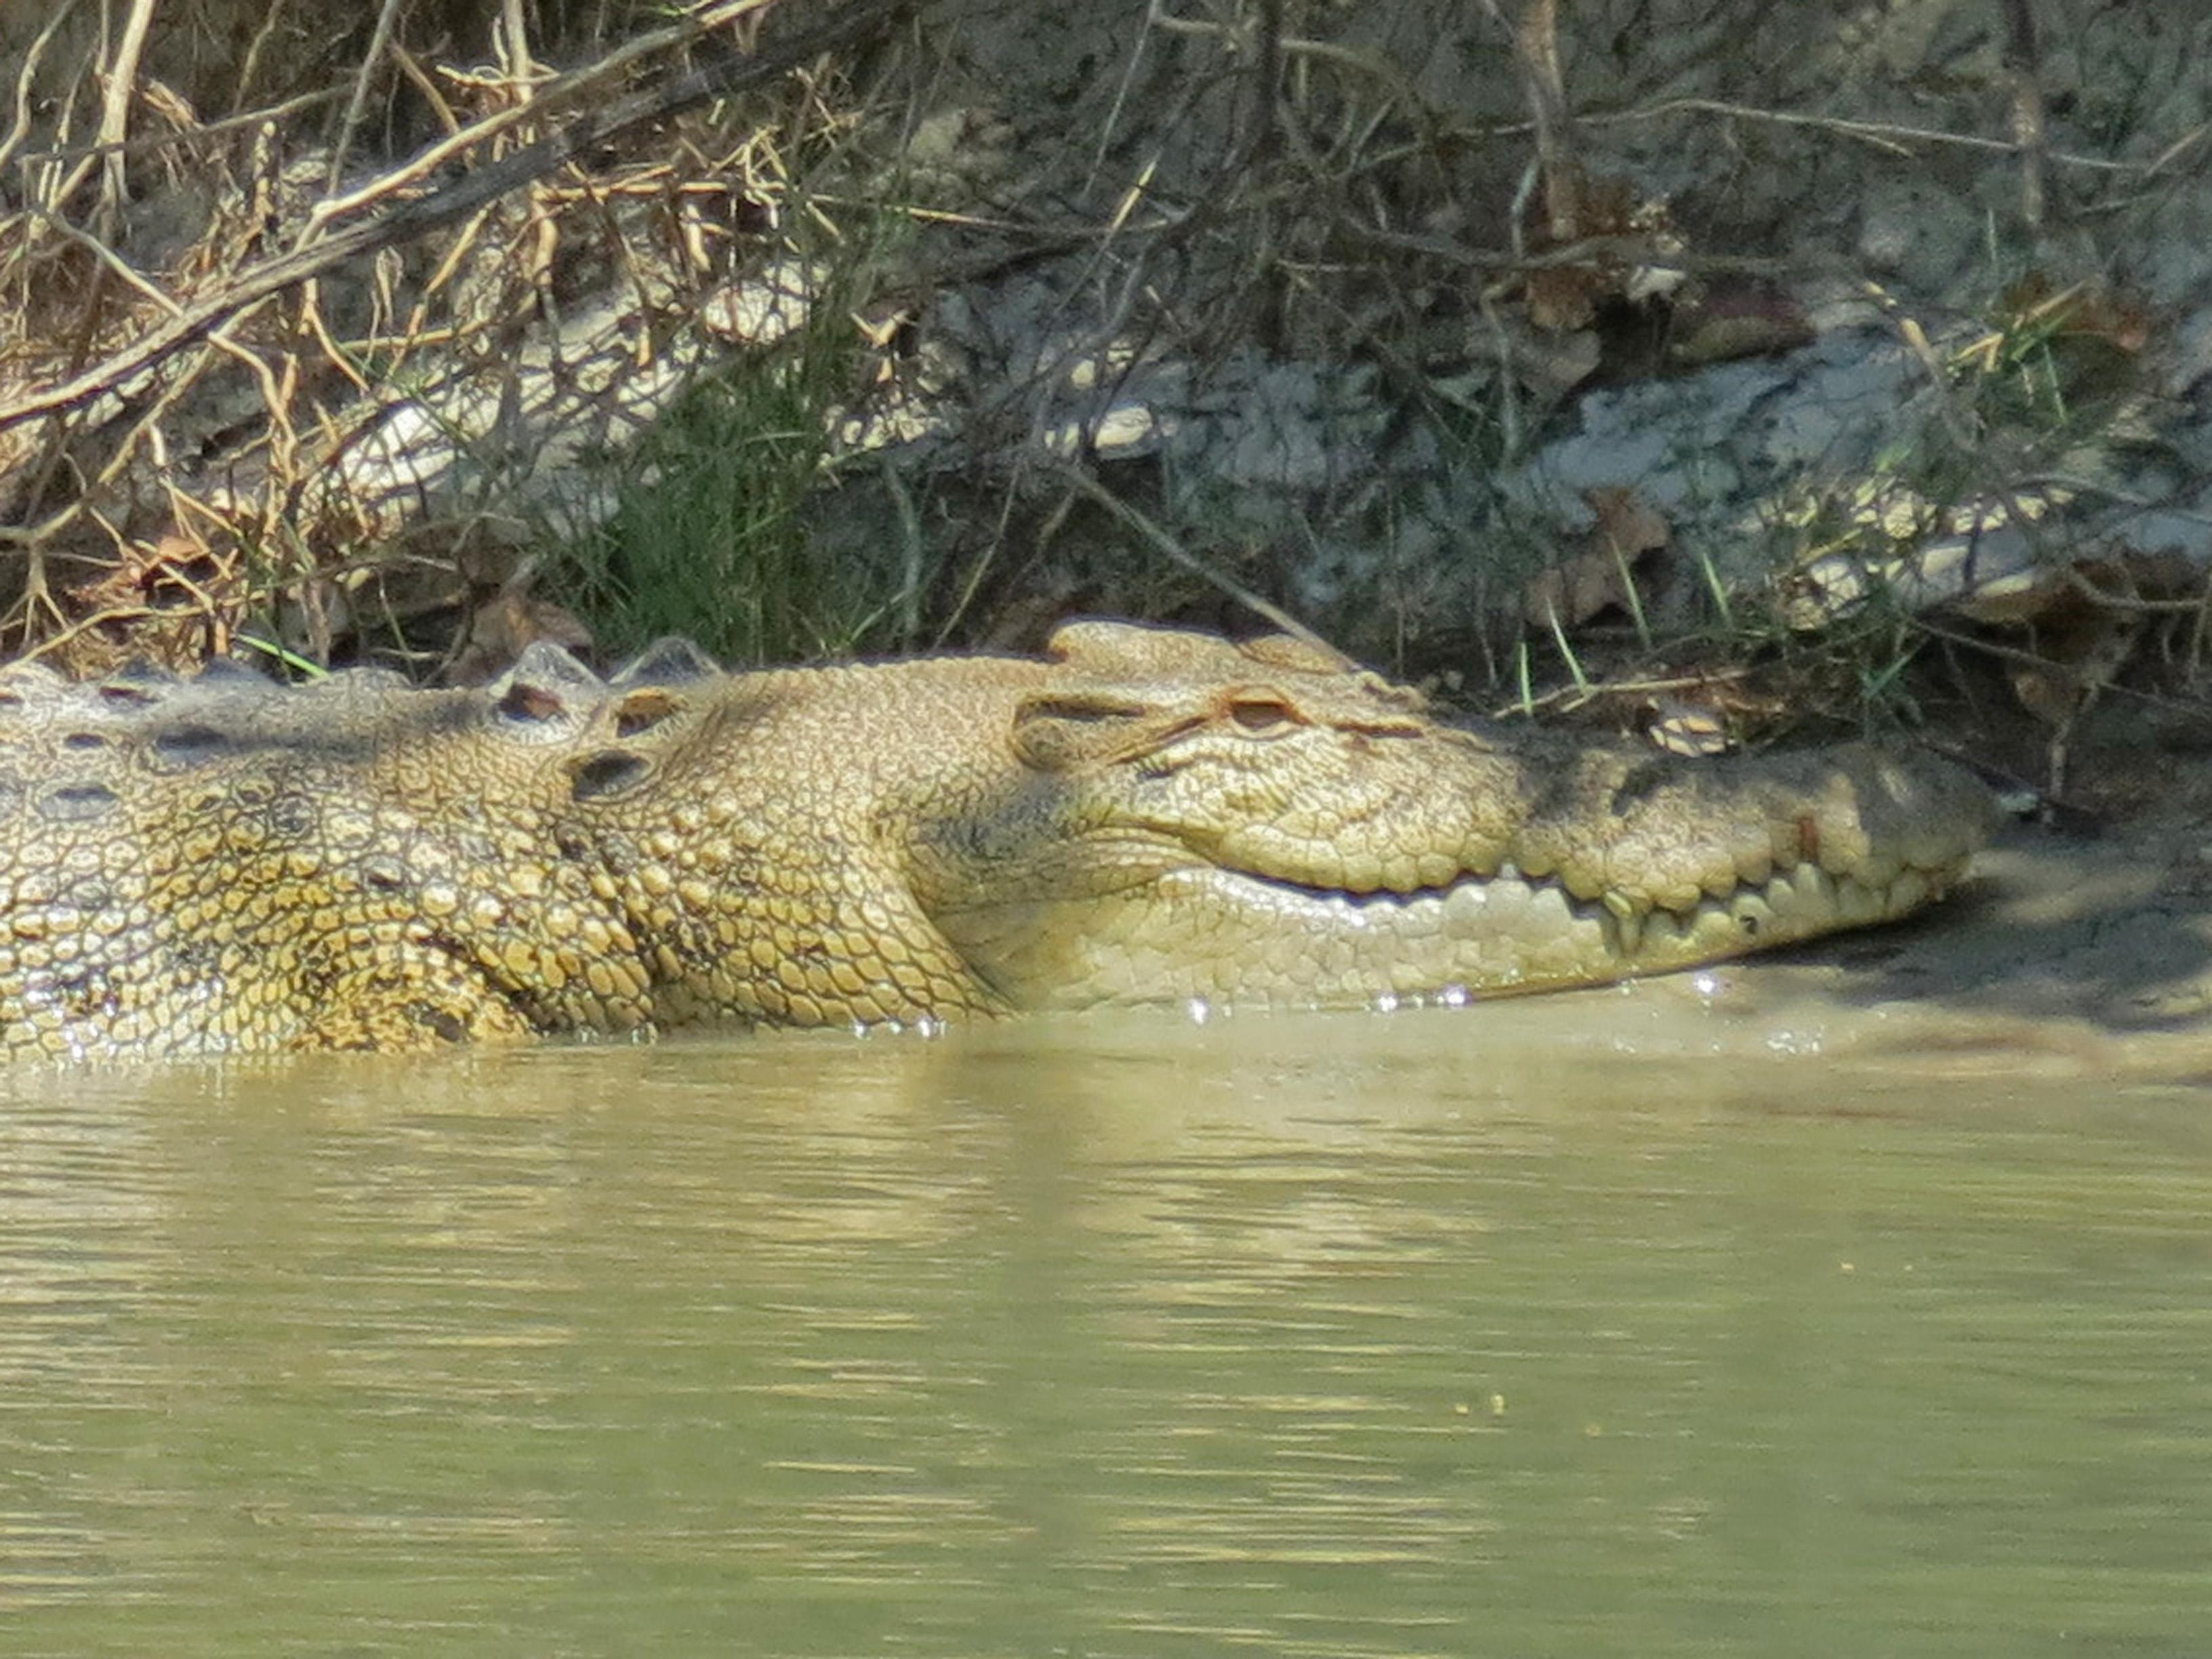 the alligator river story The alligator river story - ethics in the esl classroom this is a famous story for ethics classes adapted for use in the esl classroom your students will be.